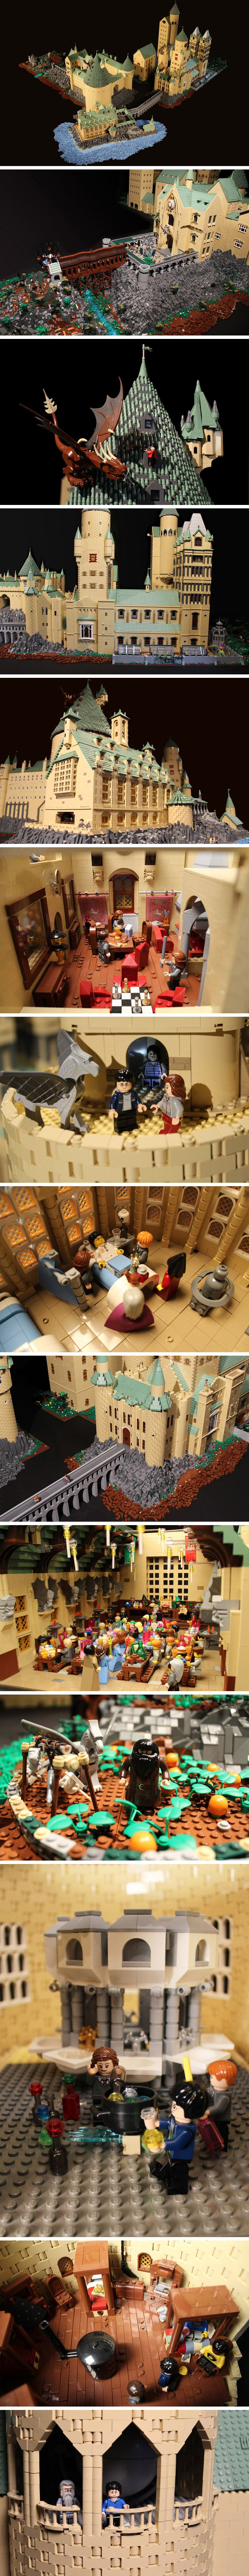 Hogwarts in Legos by Alice Finch. Someone has waayyy too much time on their hands (and I love them for it!)